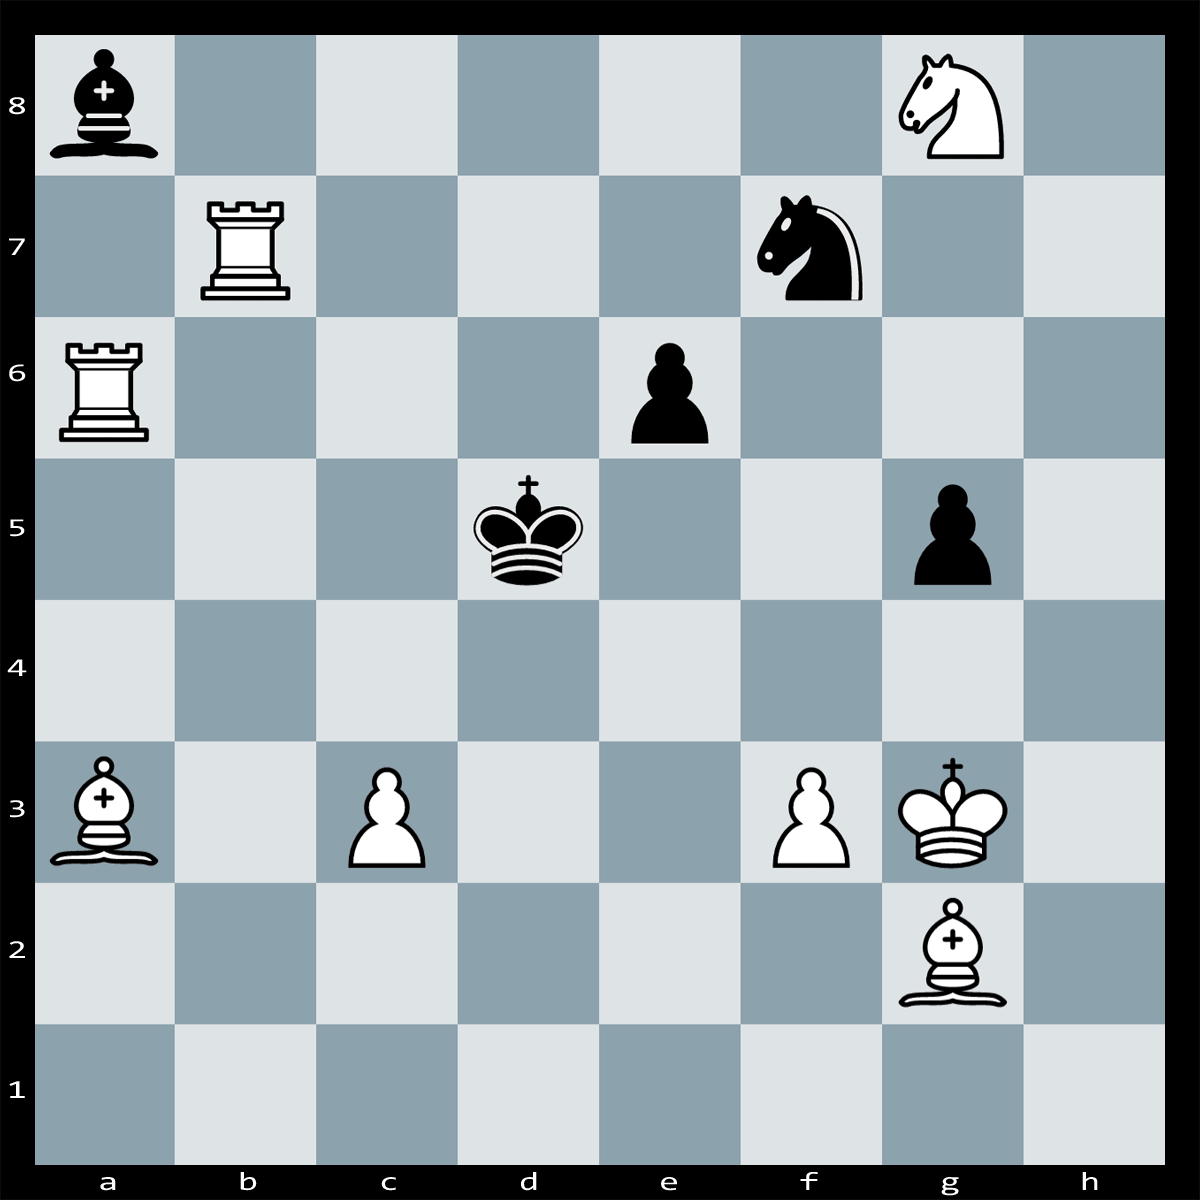 Chess Puzzle #126 - Find checkmate in two moves, White to Play.